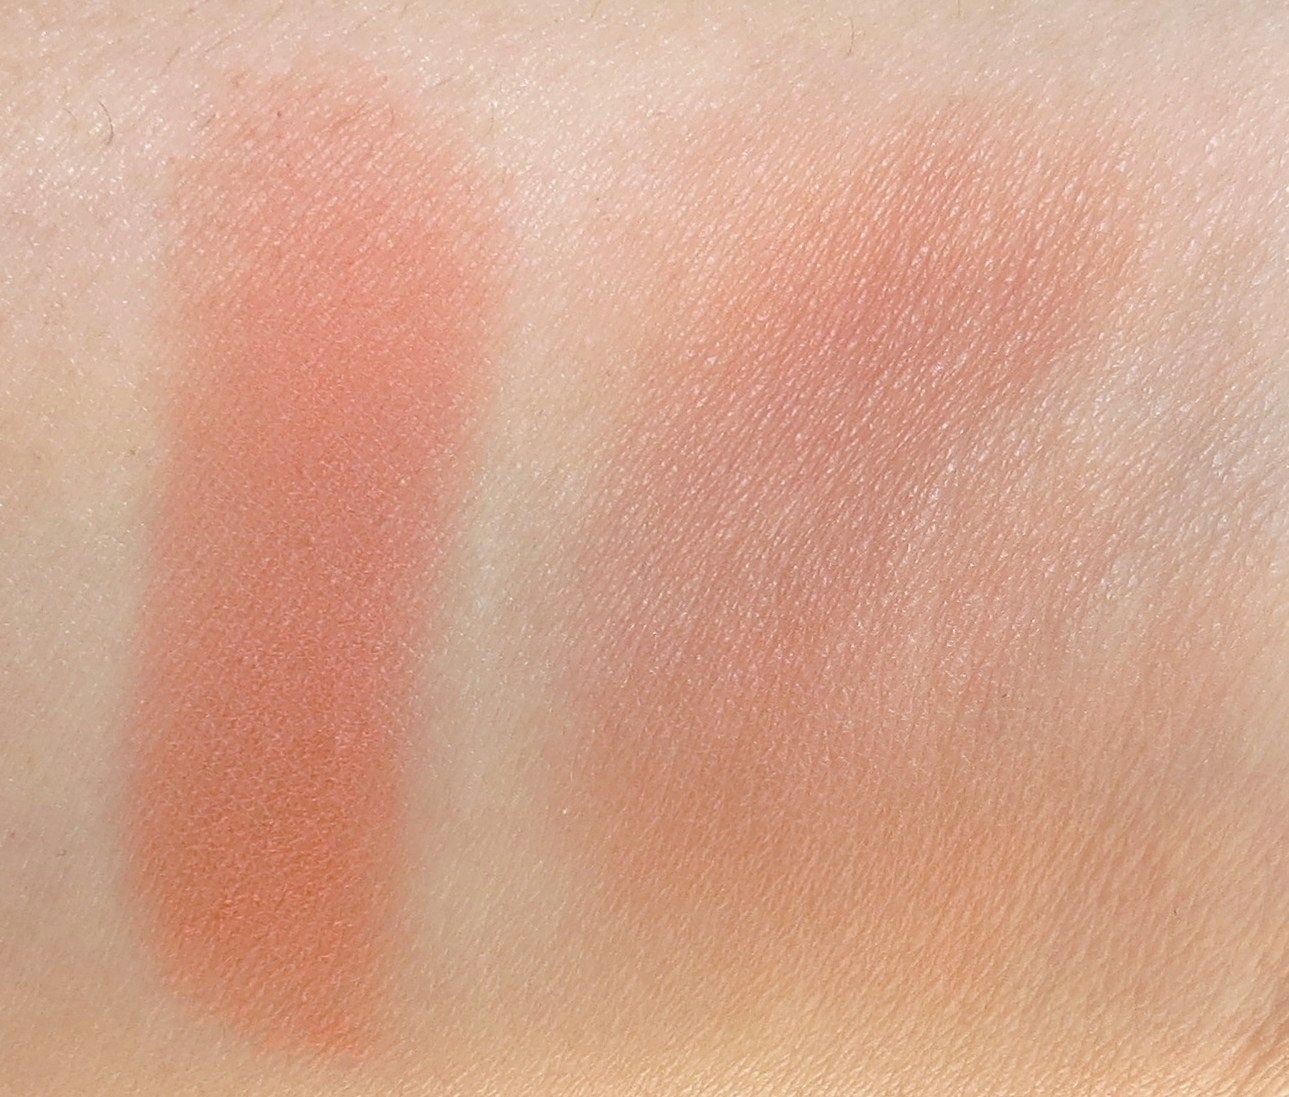 MAC Peaches Sheertone Blush Review & Swatches - My Face Hunter